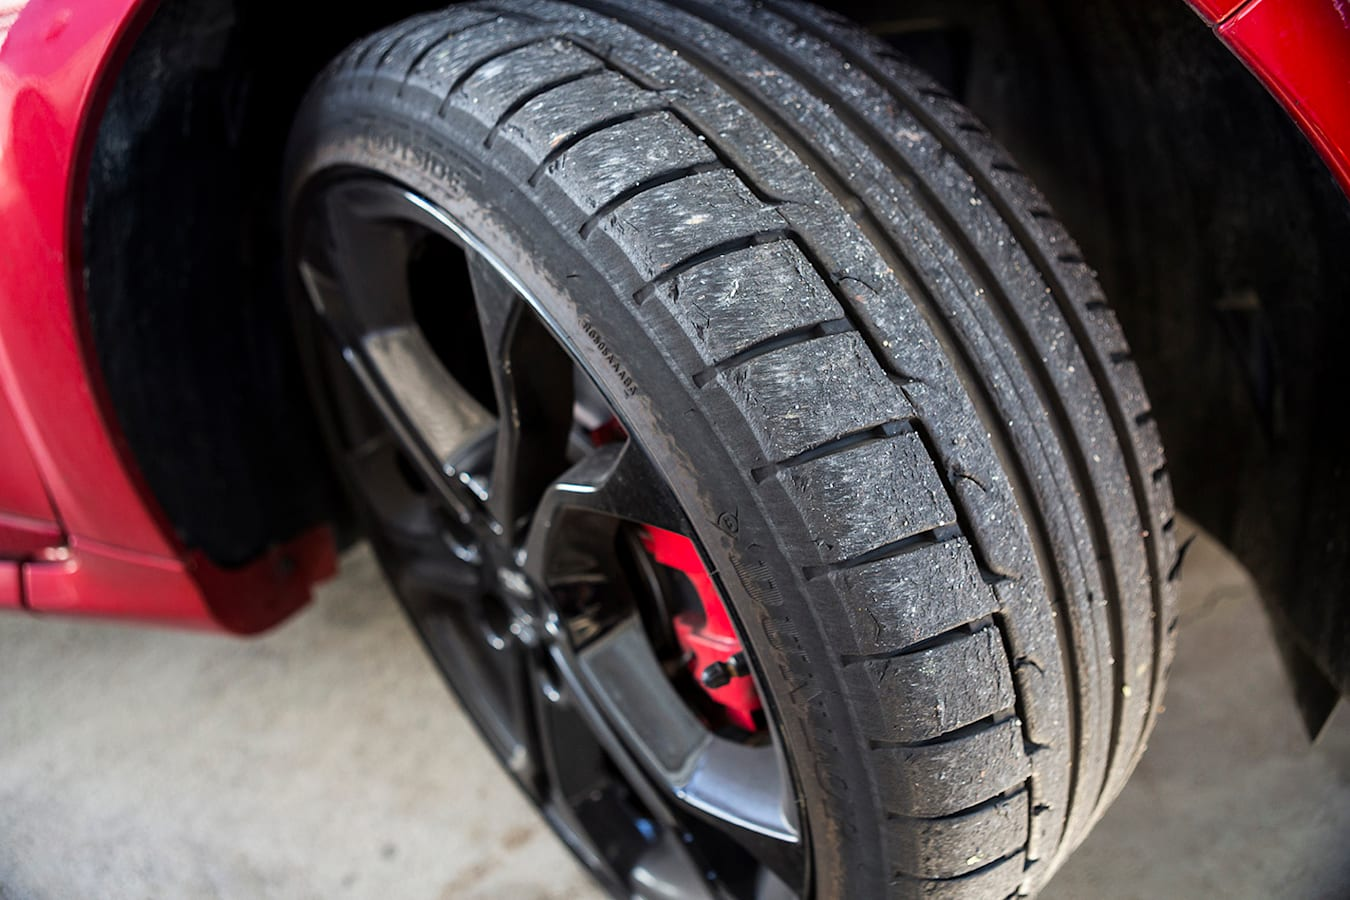 Renault Clio RS track day tyre